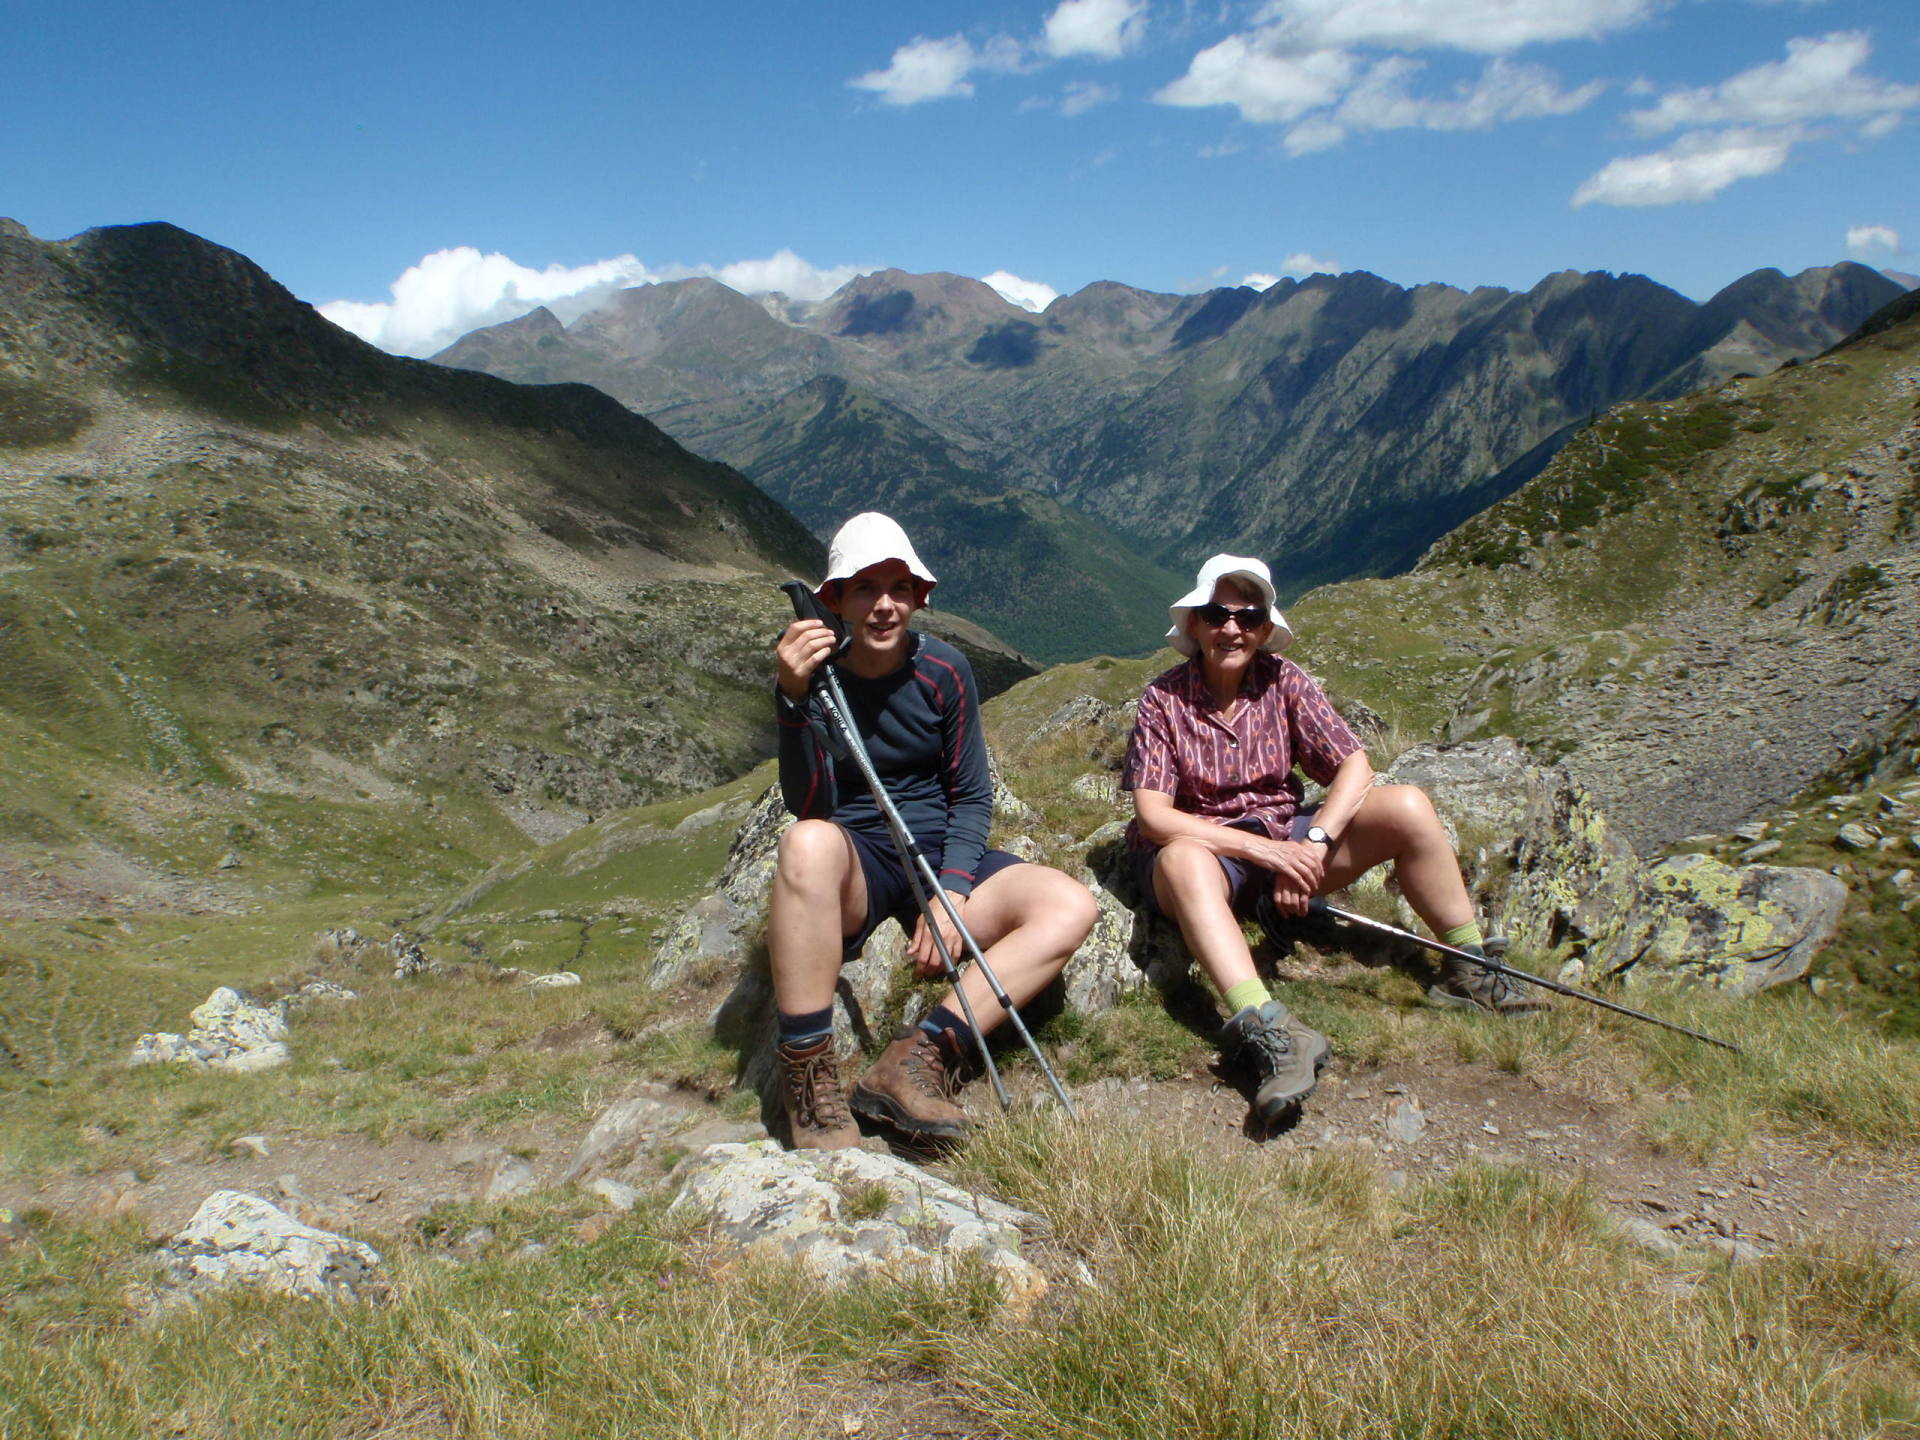 Three great places to stay along the Pyrenees mountain frontier